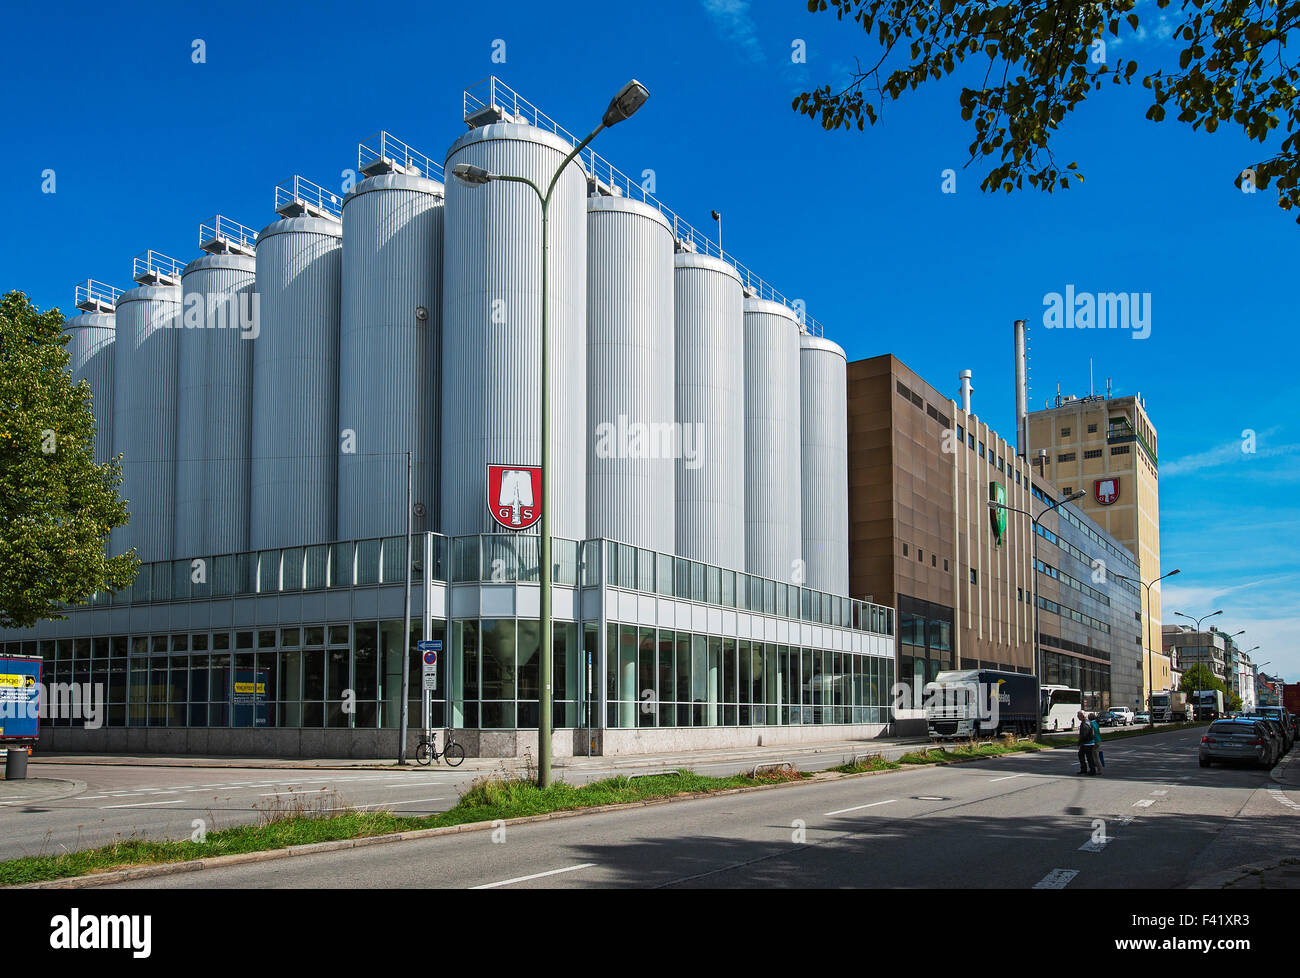 Brewery Spaten and Löwenbräu, Anheuser-Busch, filling or bottling plant, Munich, Bavaria, Germany - Stock Image